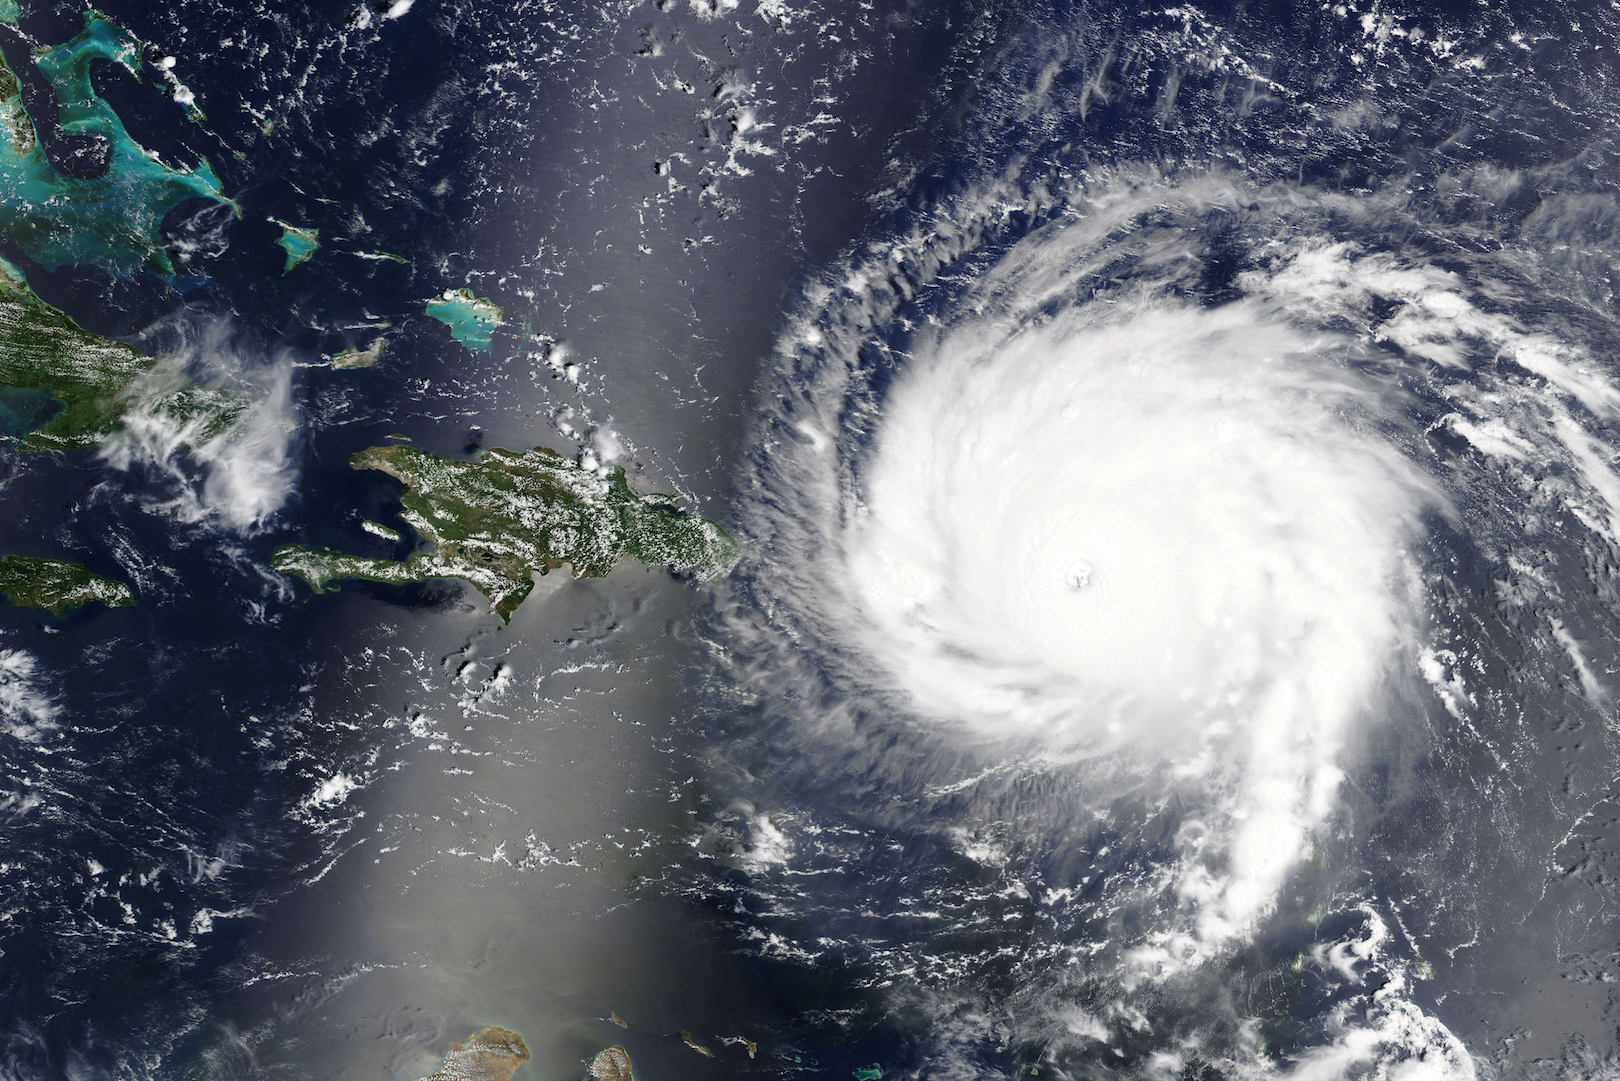 A team of scientists led by the National Center for Atmospheric Research (NCAR) is reporting on how past hurricanes would behave under the climate change conditions predicted by the end of this century.